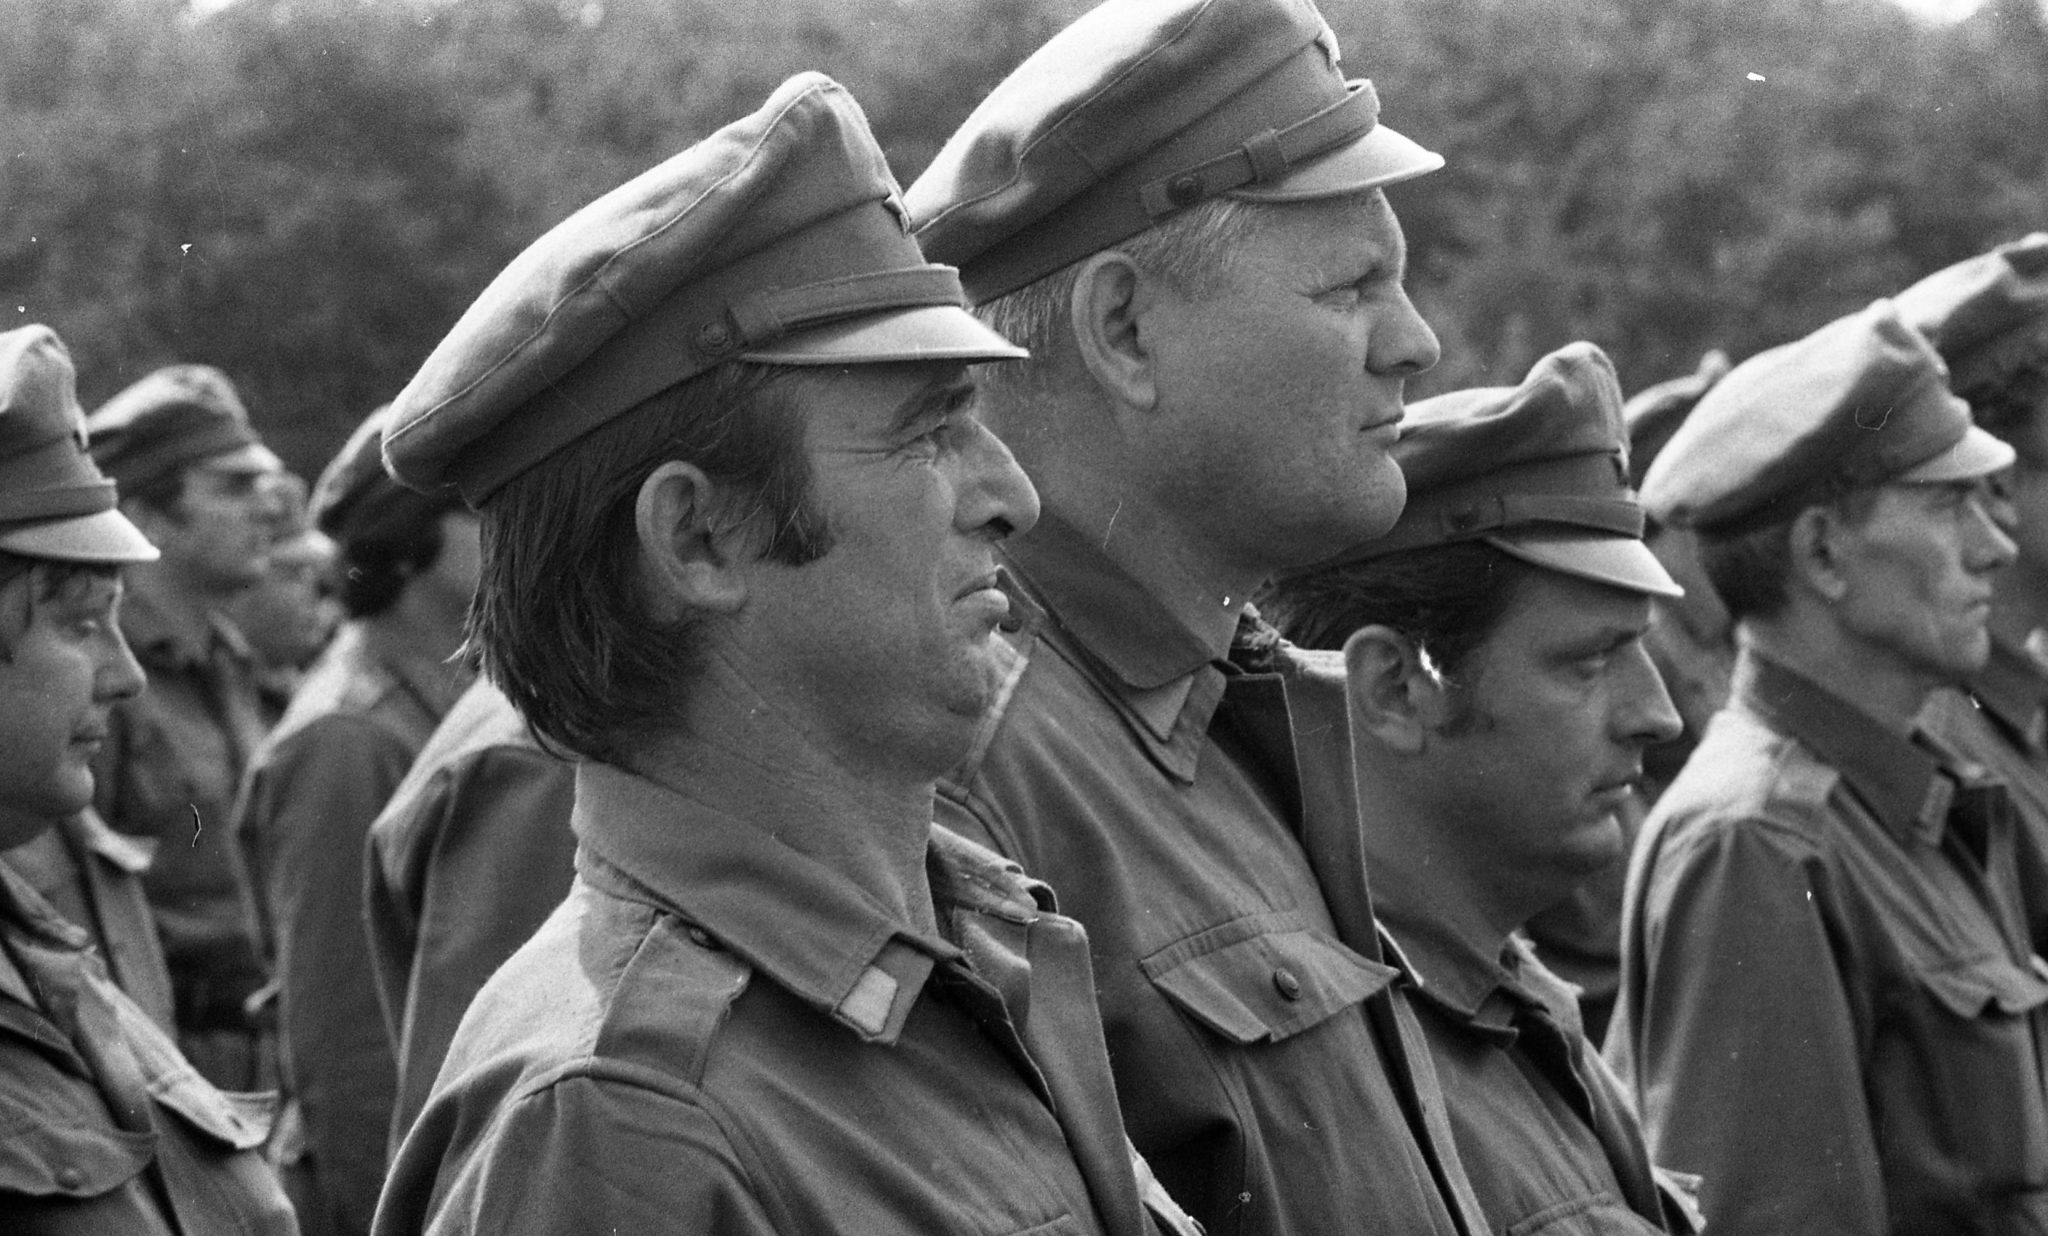 Communist ParamilitaryOrganization 'Workers' Militia' Revived post's picture